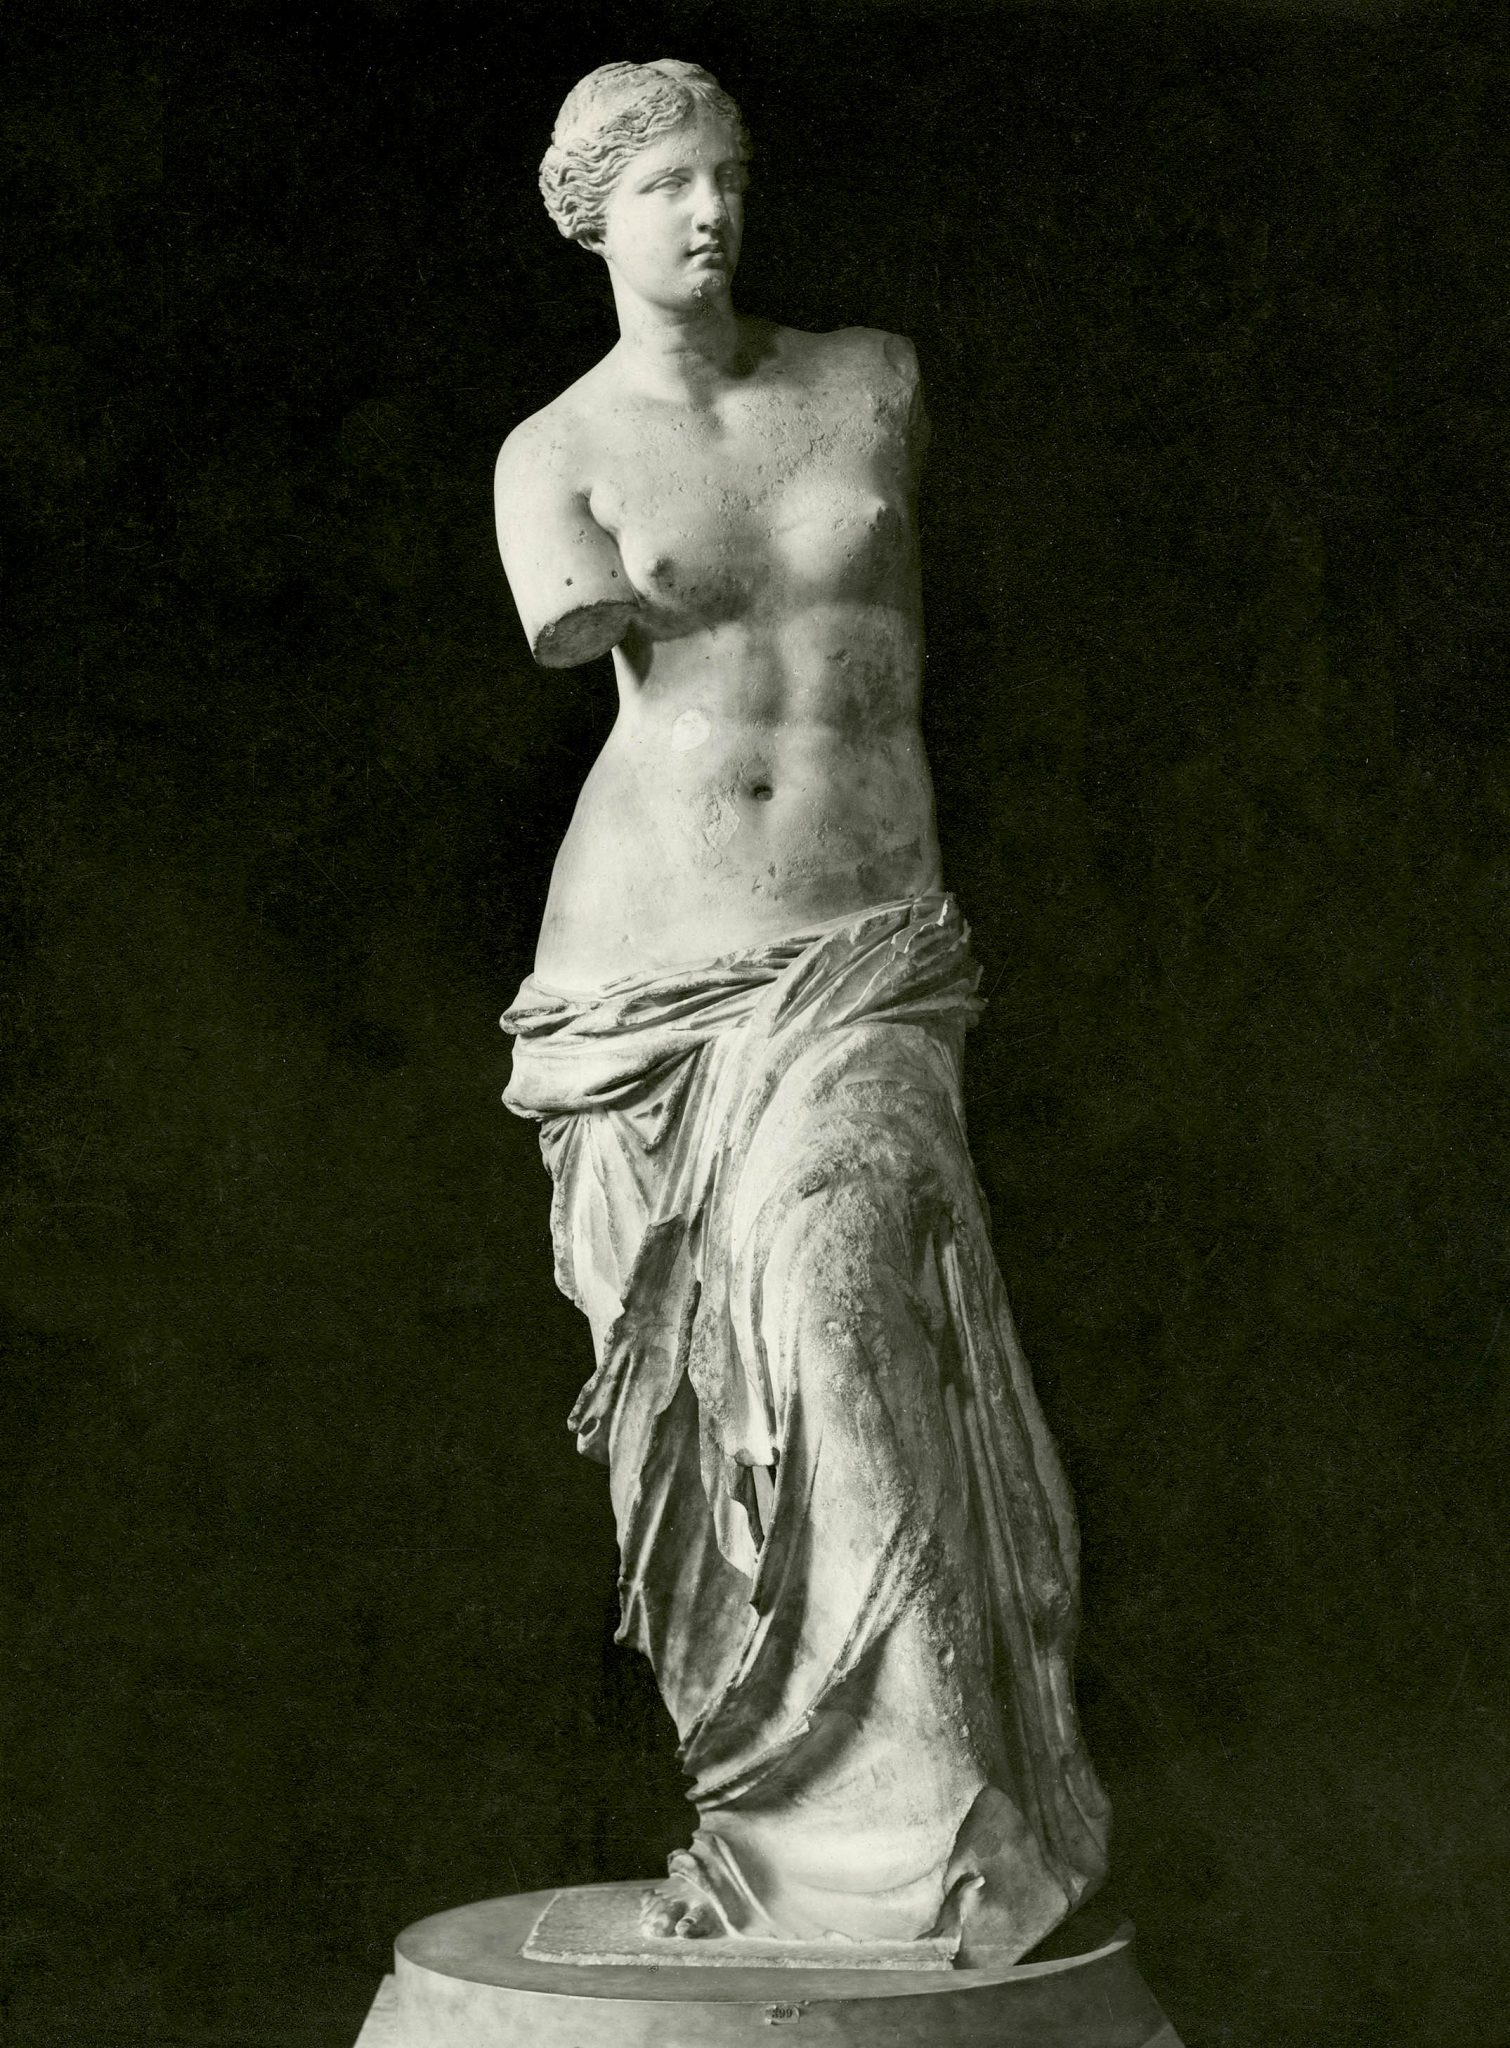 <p><i>The Venus de Milo.</i></p><p>130-110 BCE, attributed to Alexandros of Antioch.</p><p>Marble. Musée du Louvre, Paris.</p>